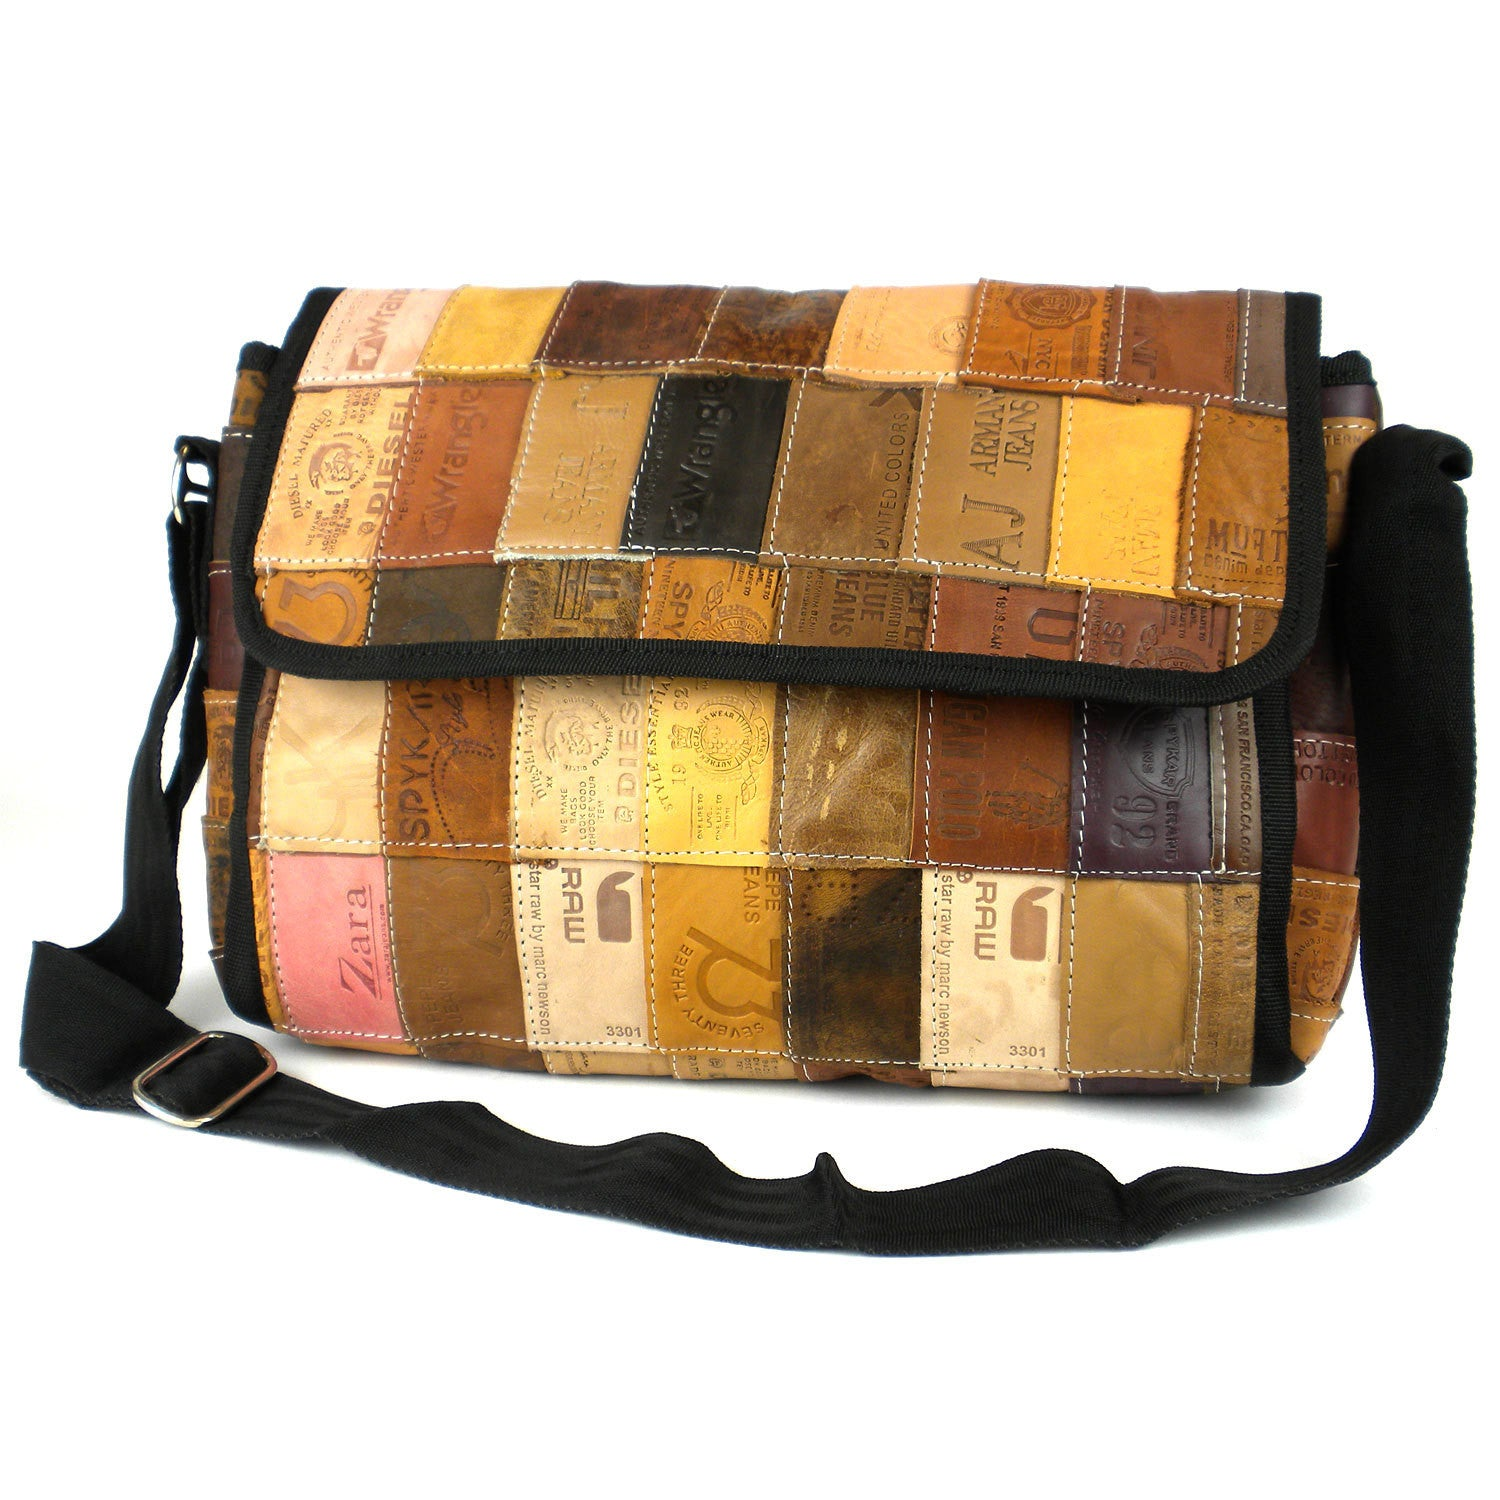 Handbag made in Nepal. Fair Trade Handcrafted Wood Handle Purse